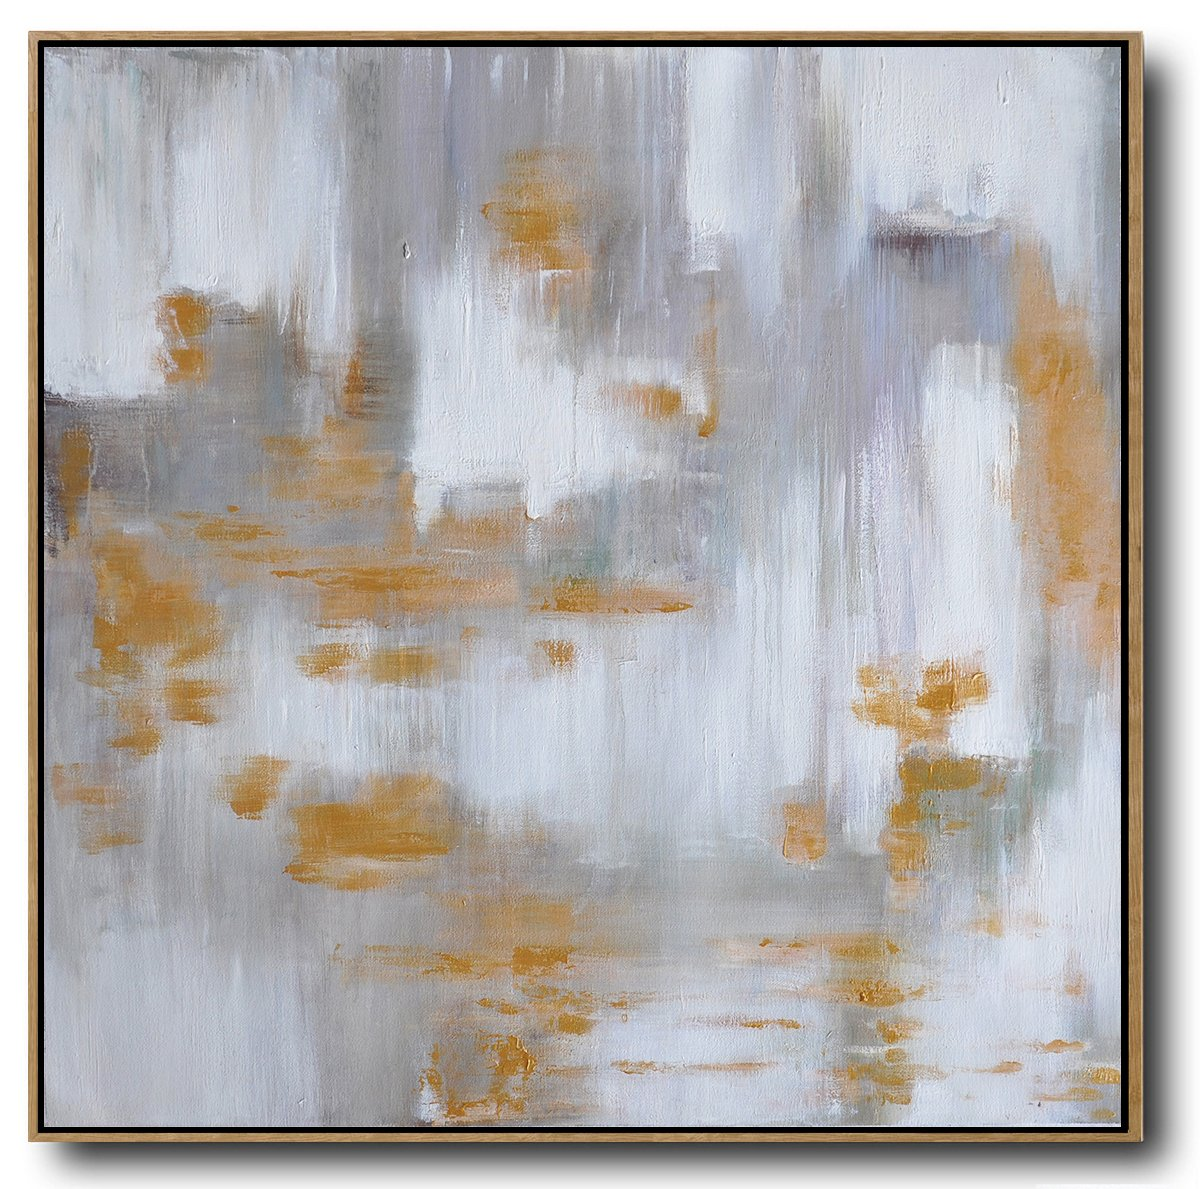 Extra Large Acrylic Painting On Canvas,Large Abstract Landscape Oil Painting On Canvas,Size Extra Large Abstract Art,Glod,White,Grey.etc